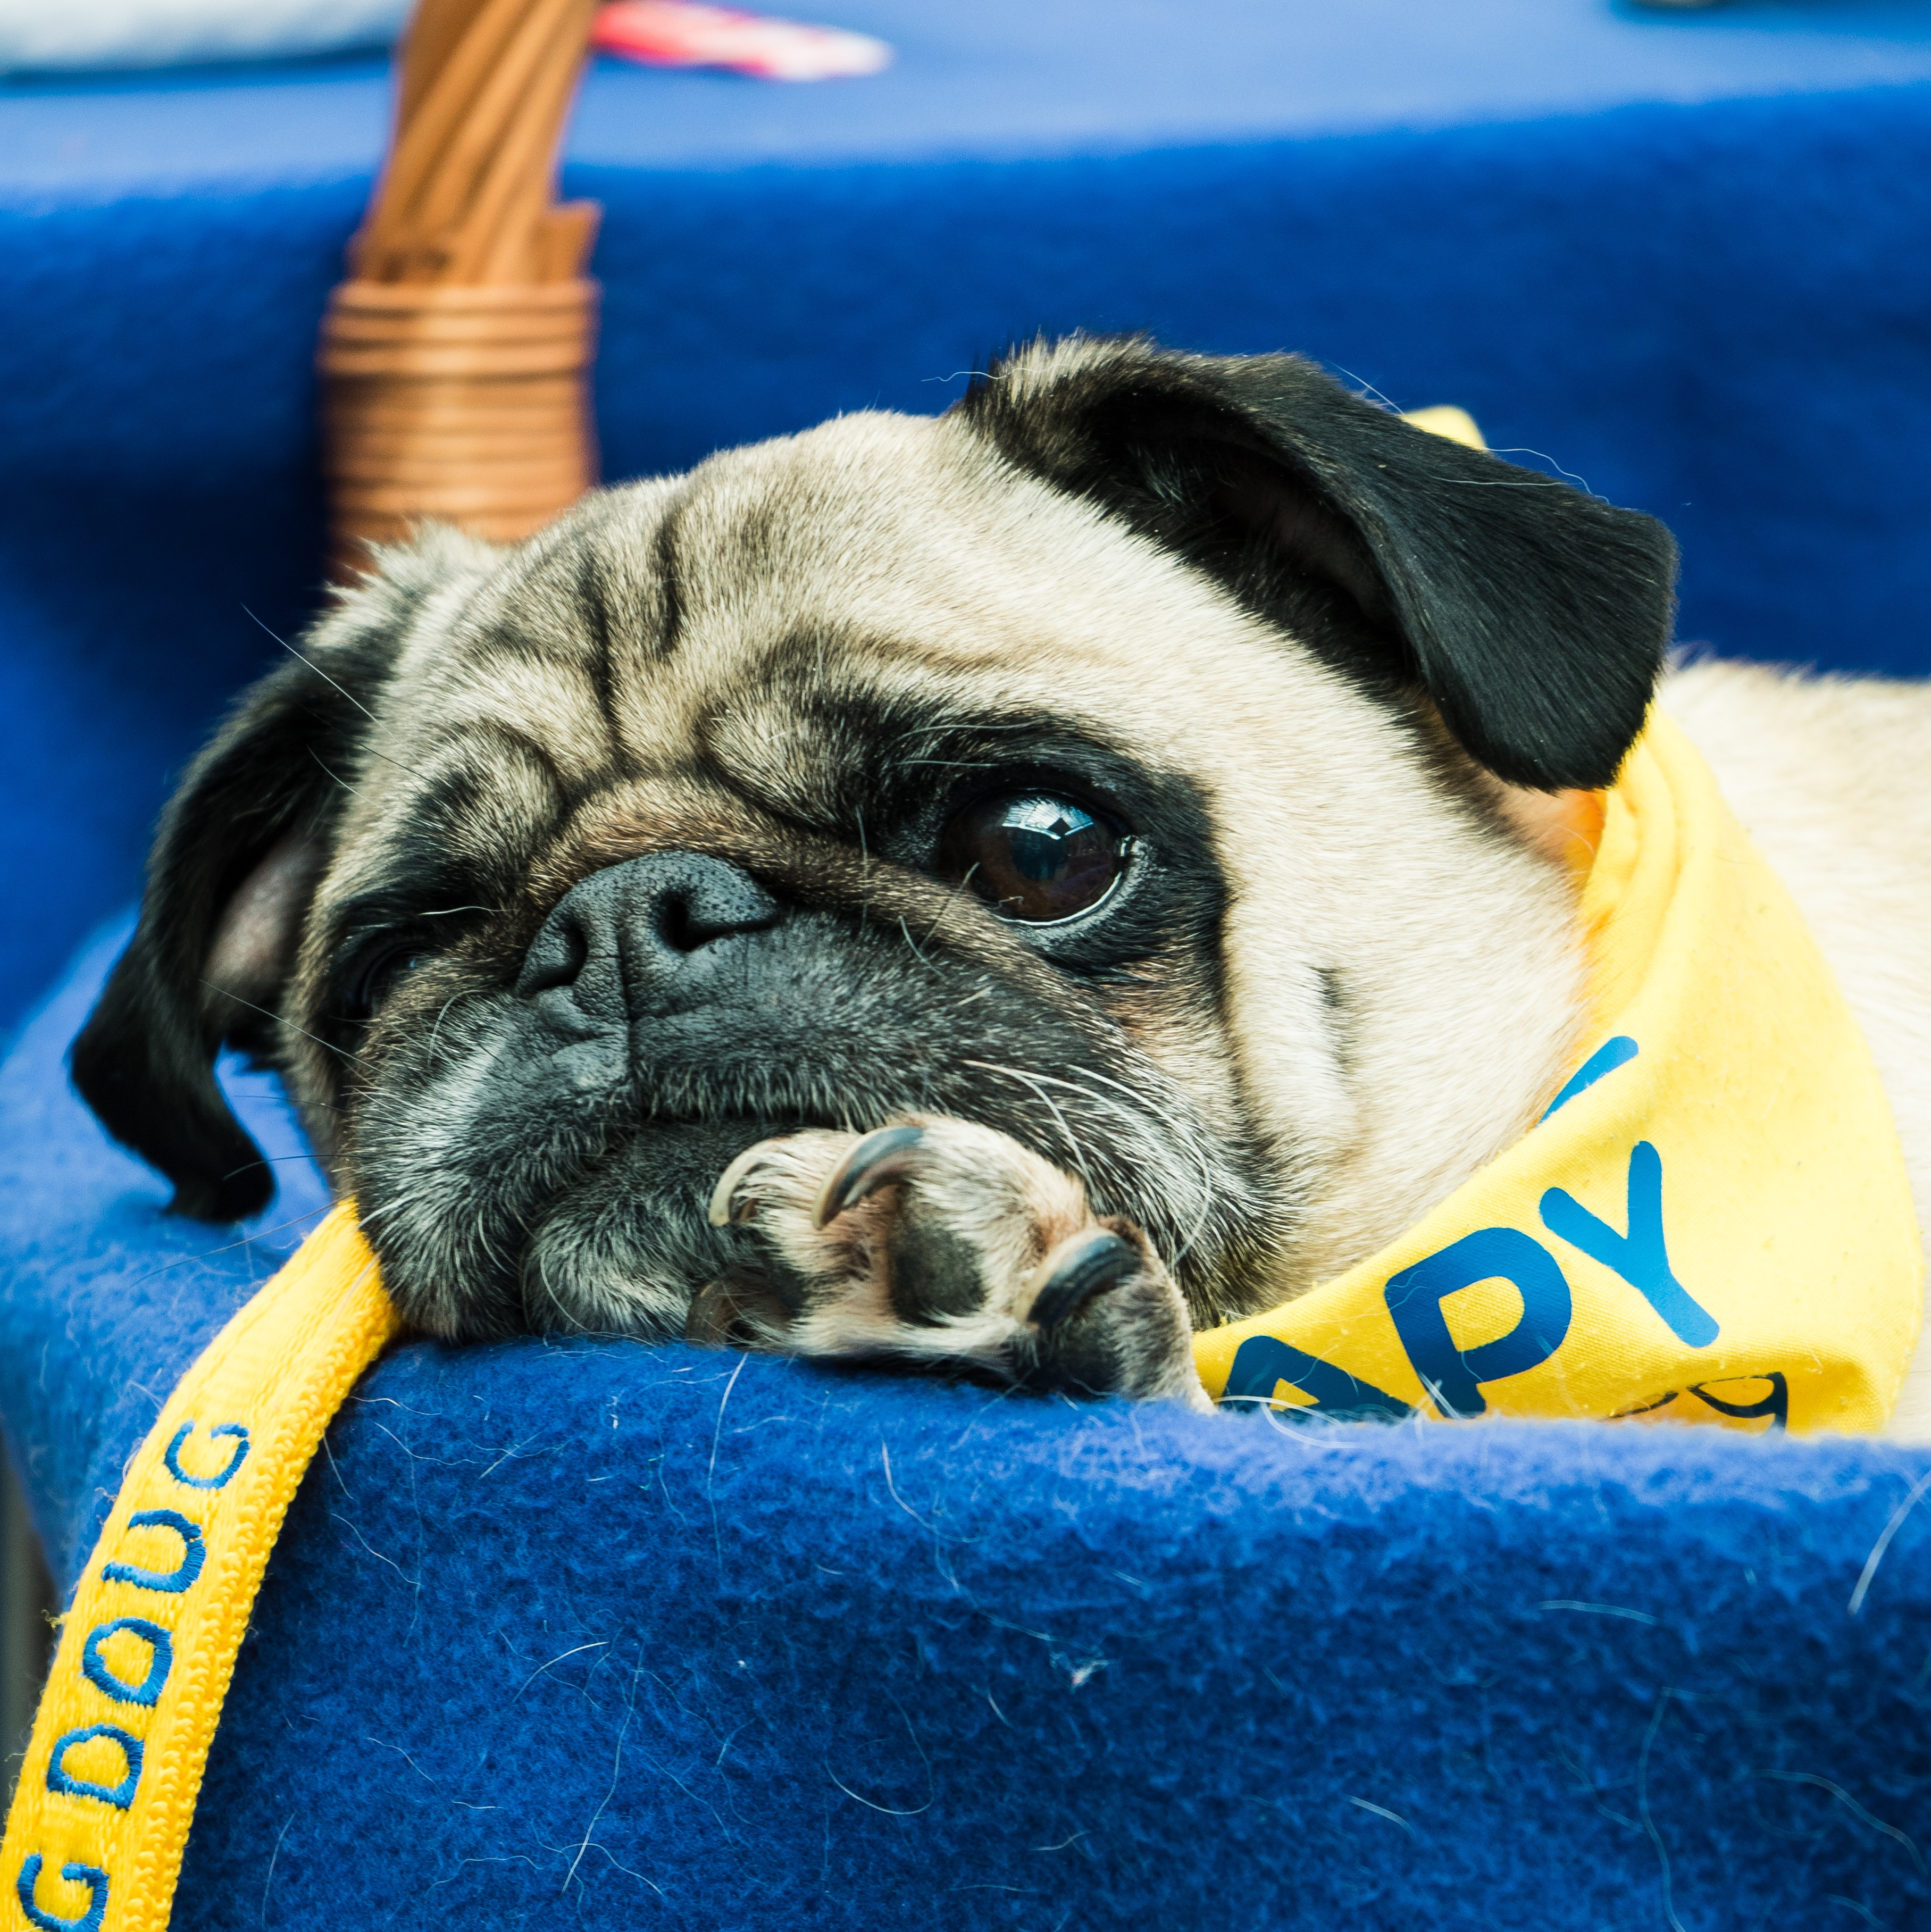 Therapy pug cropped.jpg